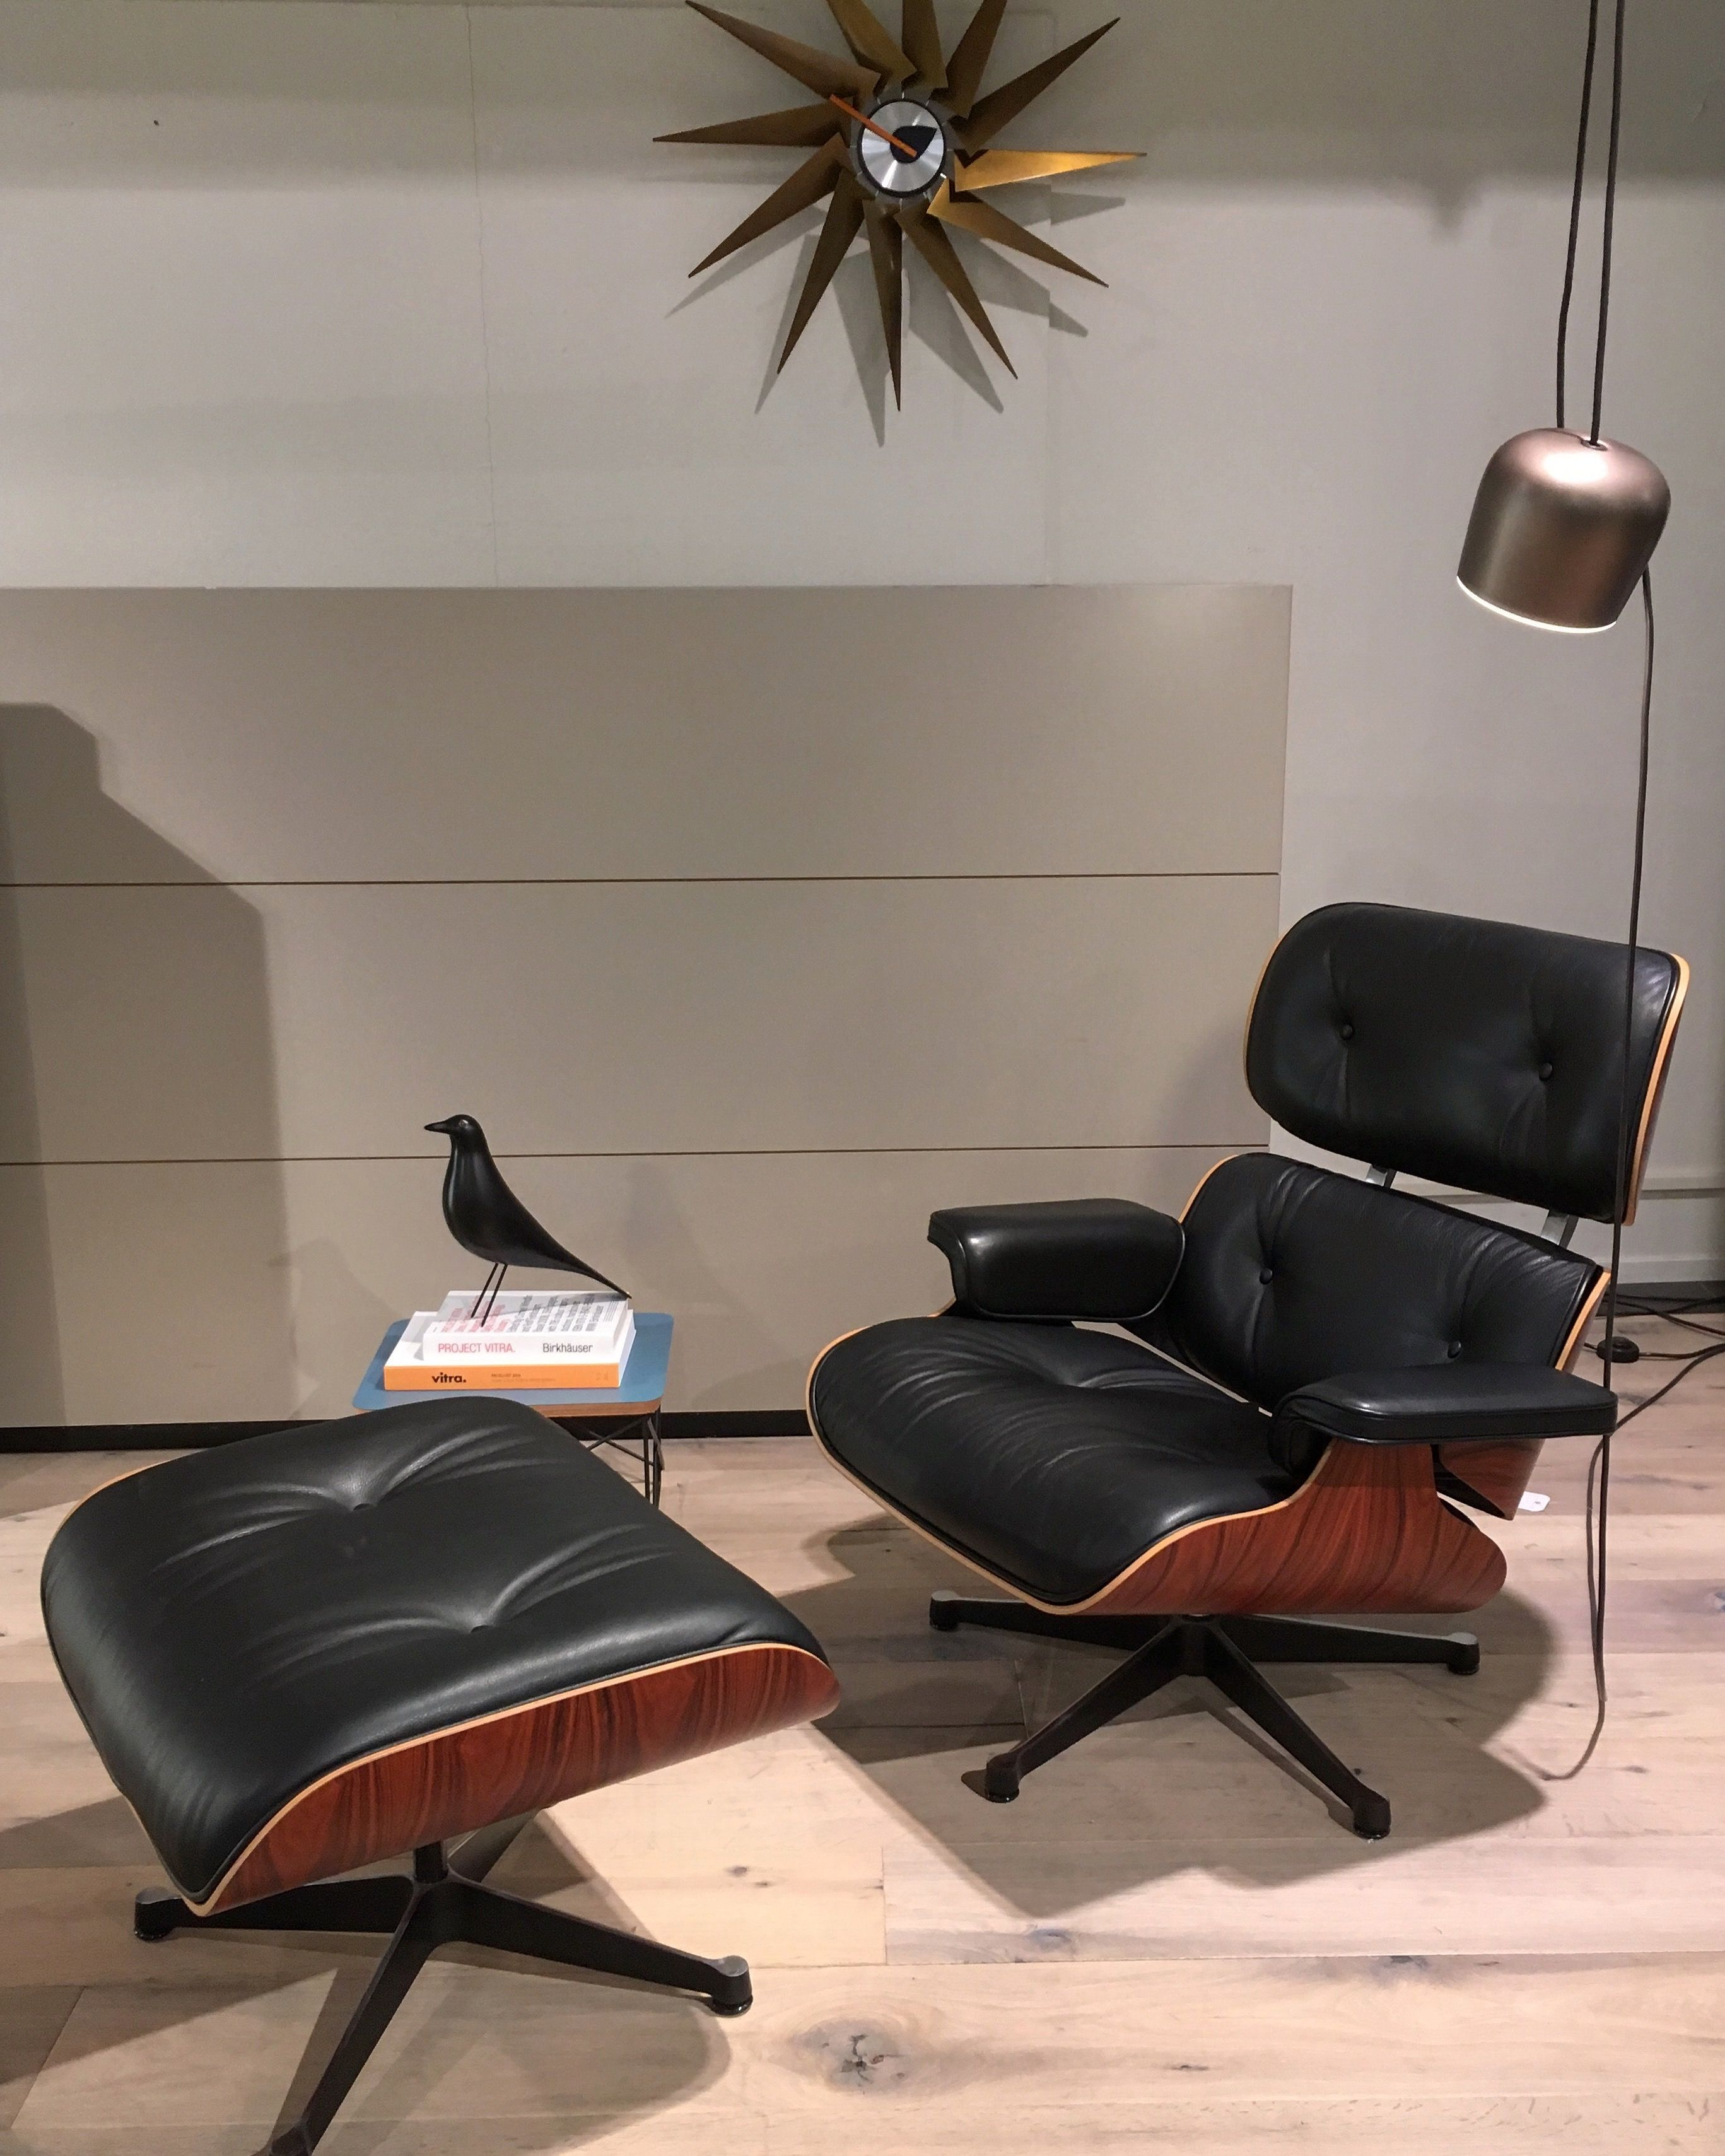 Cool Eames Lounge Chair With Palisander Wood Shell Charles Ray Gmtry Best Dining Table And Chair Ideas Images Gmtryco